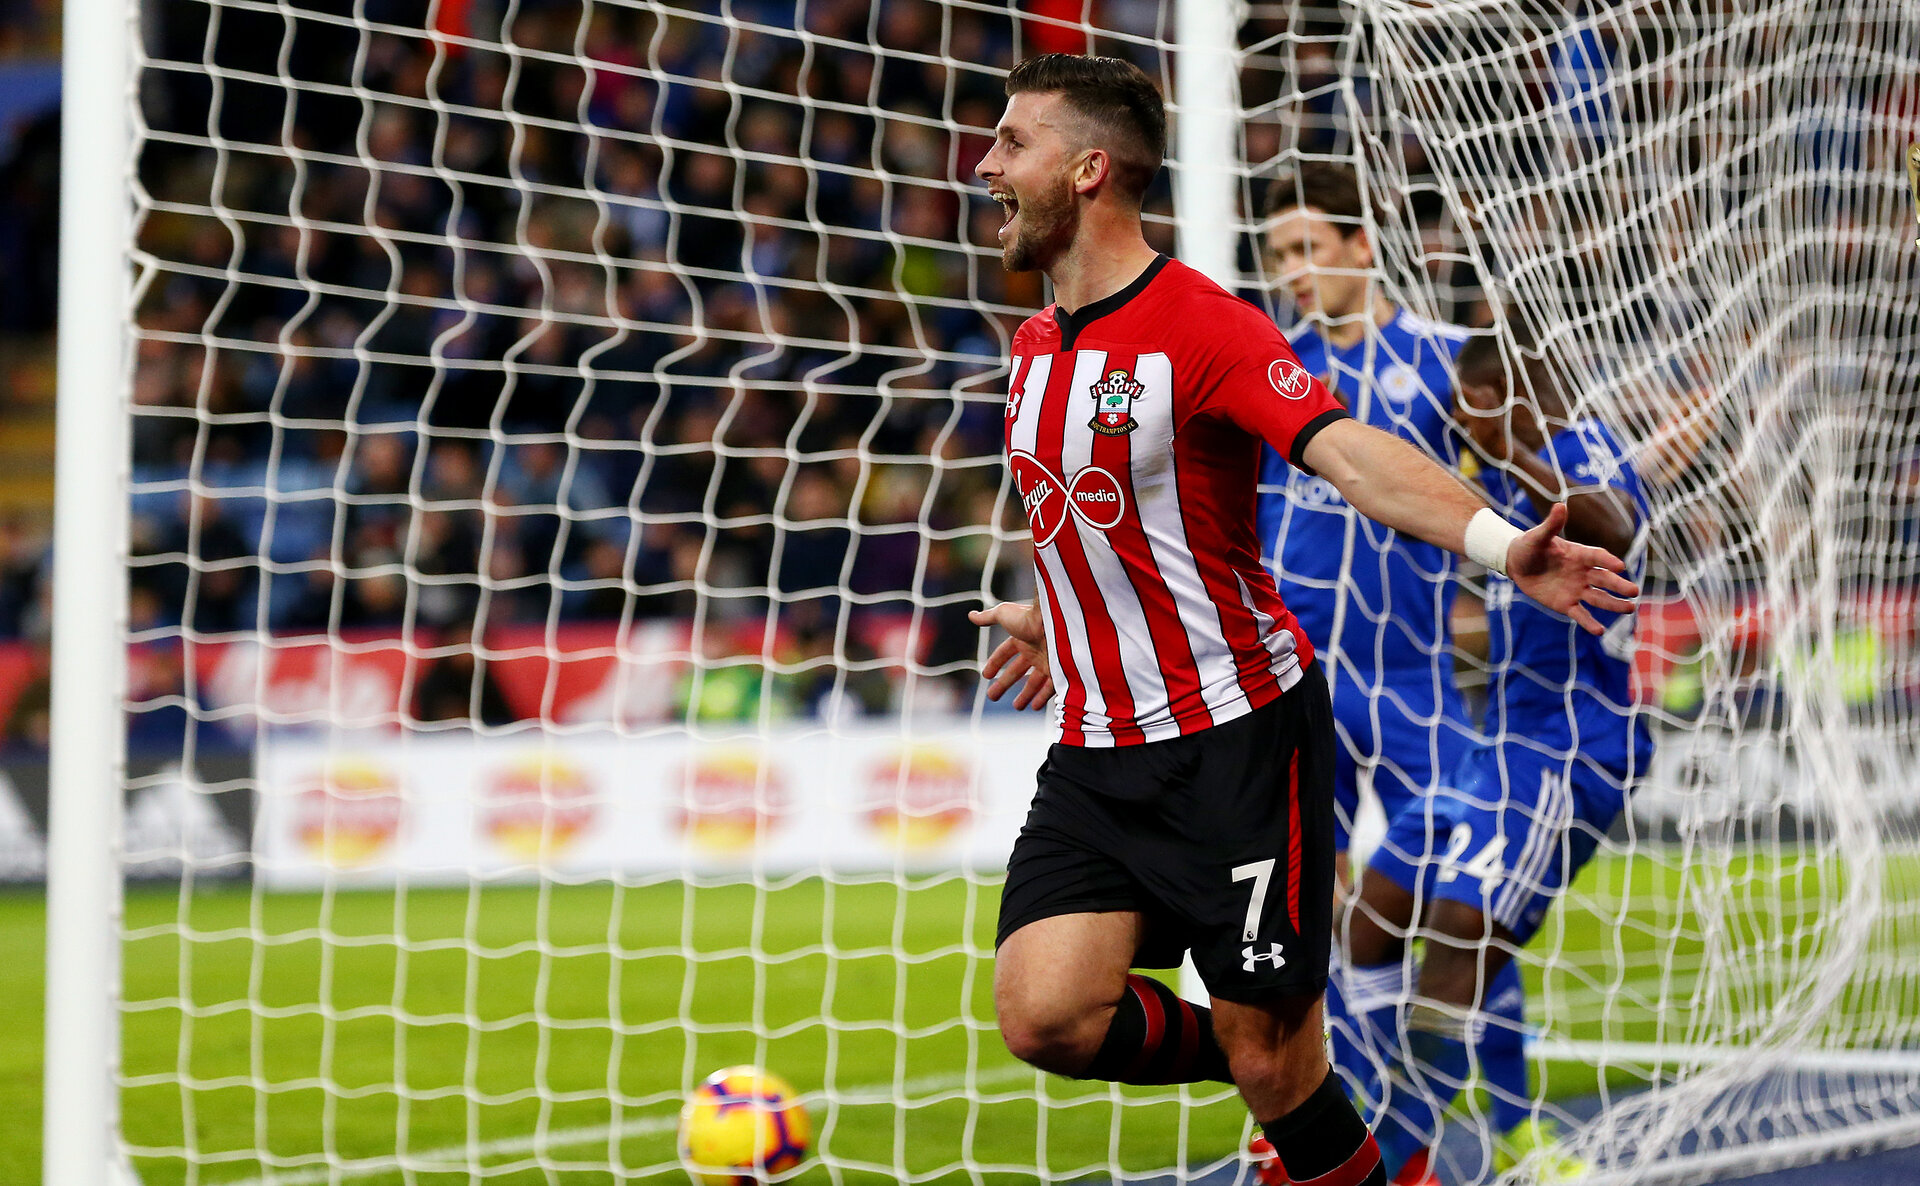 LEICESTER, ENGLAND - JANUARY 12: Shane Long of Southampton celebrates after putting his team 2-0 up during the Premier League match between Leicester City and Southampton FC at The King Power Stadium on January 12, 2019 in Leicester, United Kingdom. (Photo by Matt Watson/Southampton FC via Getty Images)